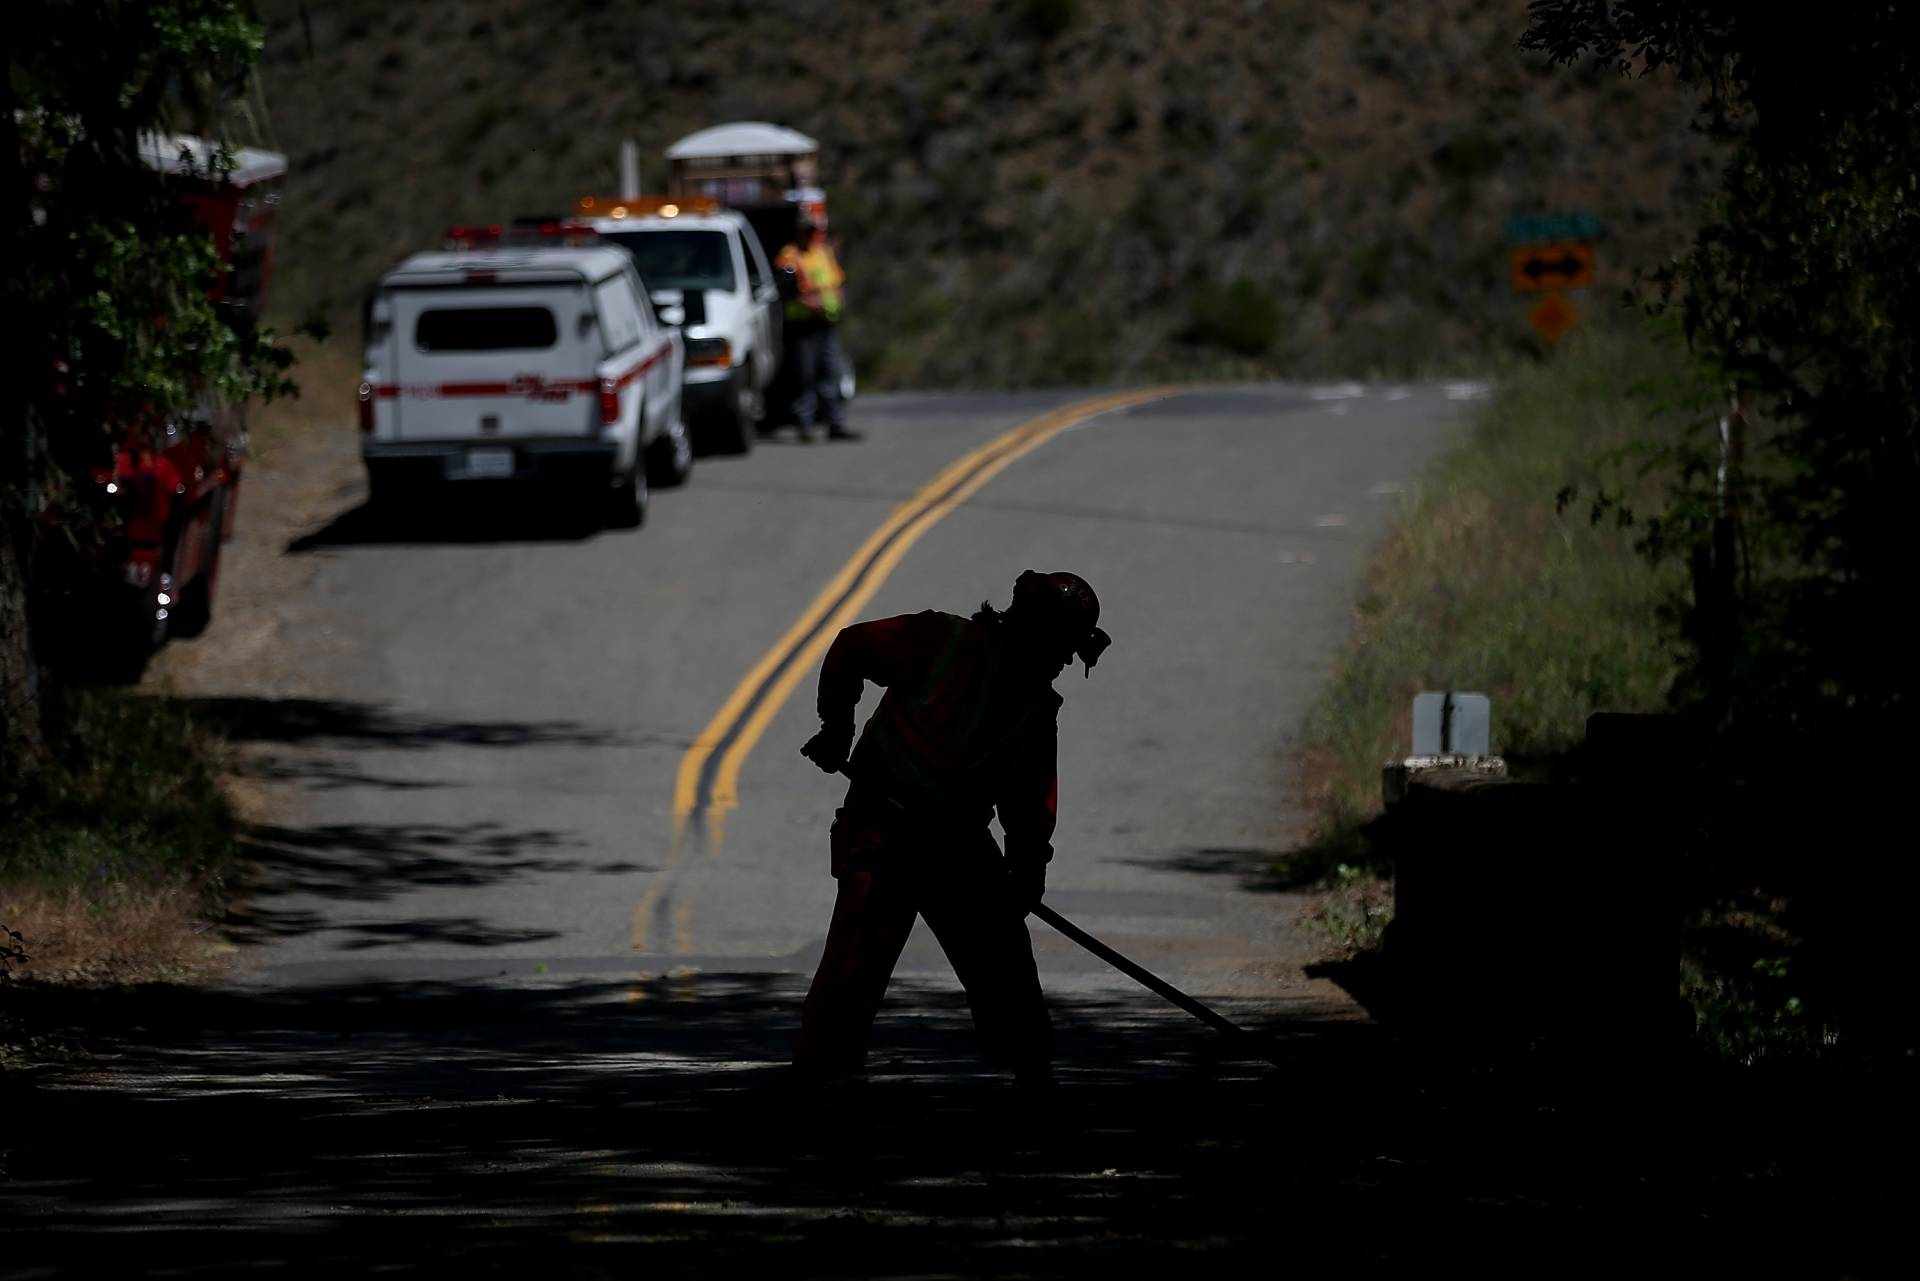 A fire crew sweeps the road to remove ground fuels and small trees along a road to help reduce the spread of fire in the event of a wildfire. Justin Sullivan/Getty Images